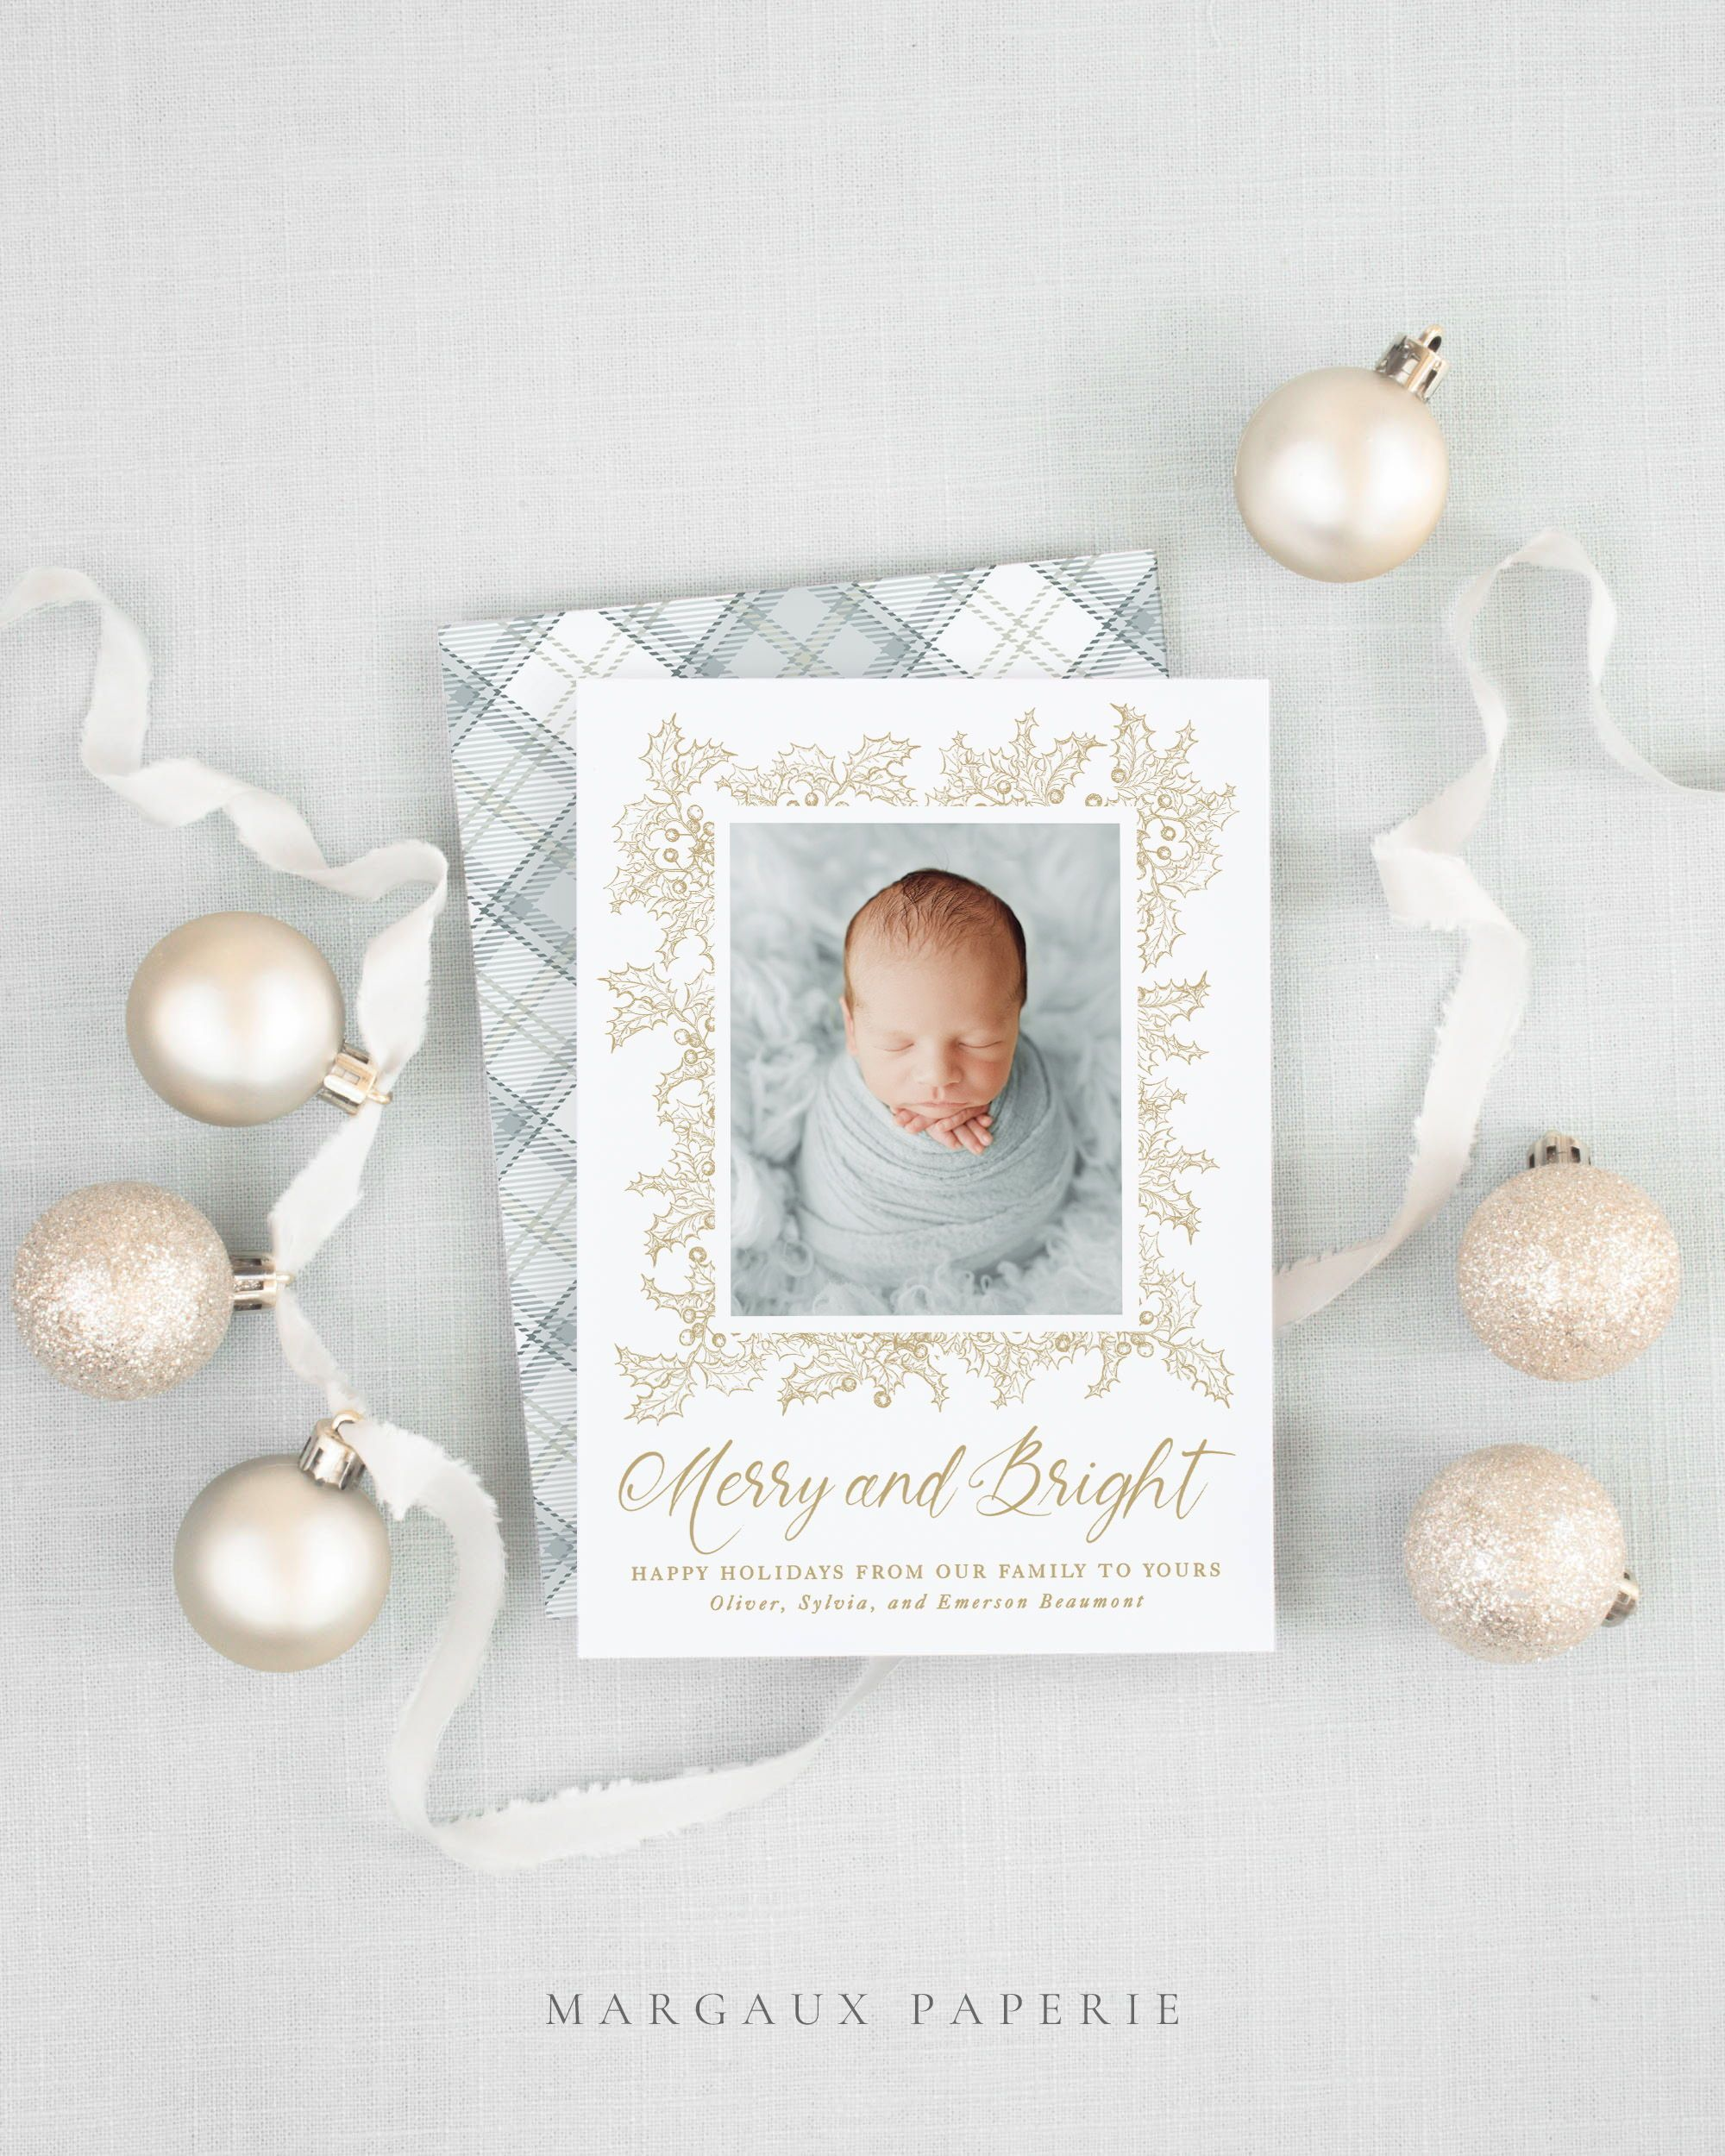 Merry And Bright Christmas Card Digital Download Printable Etsy Christmas Card Template Family Christmas Card Photos Printable Christmas Cards